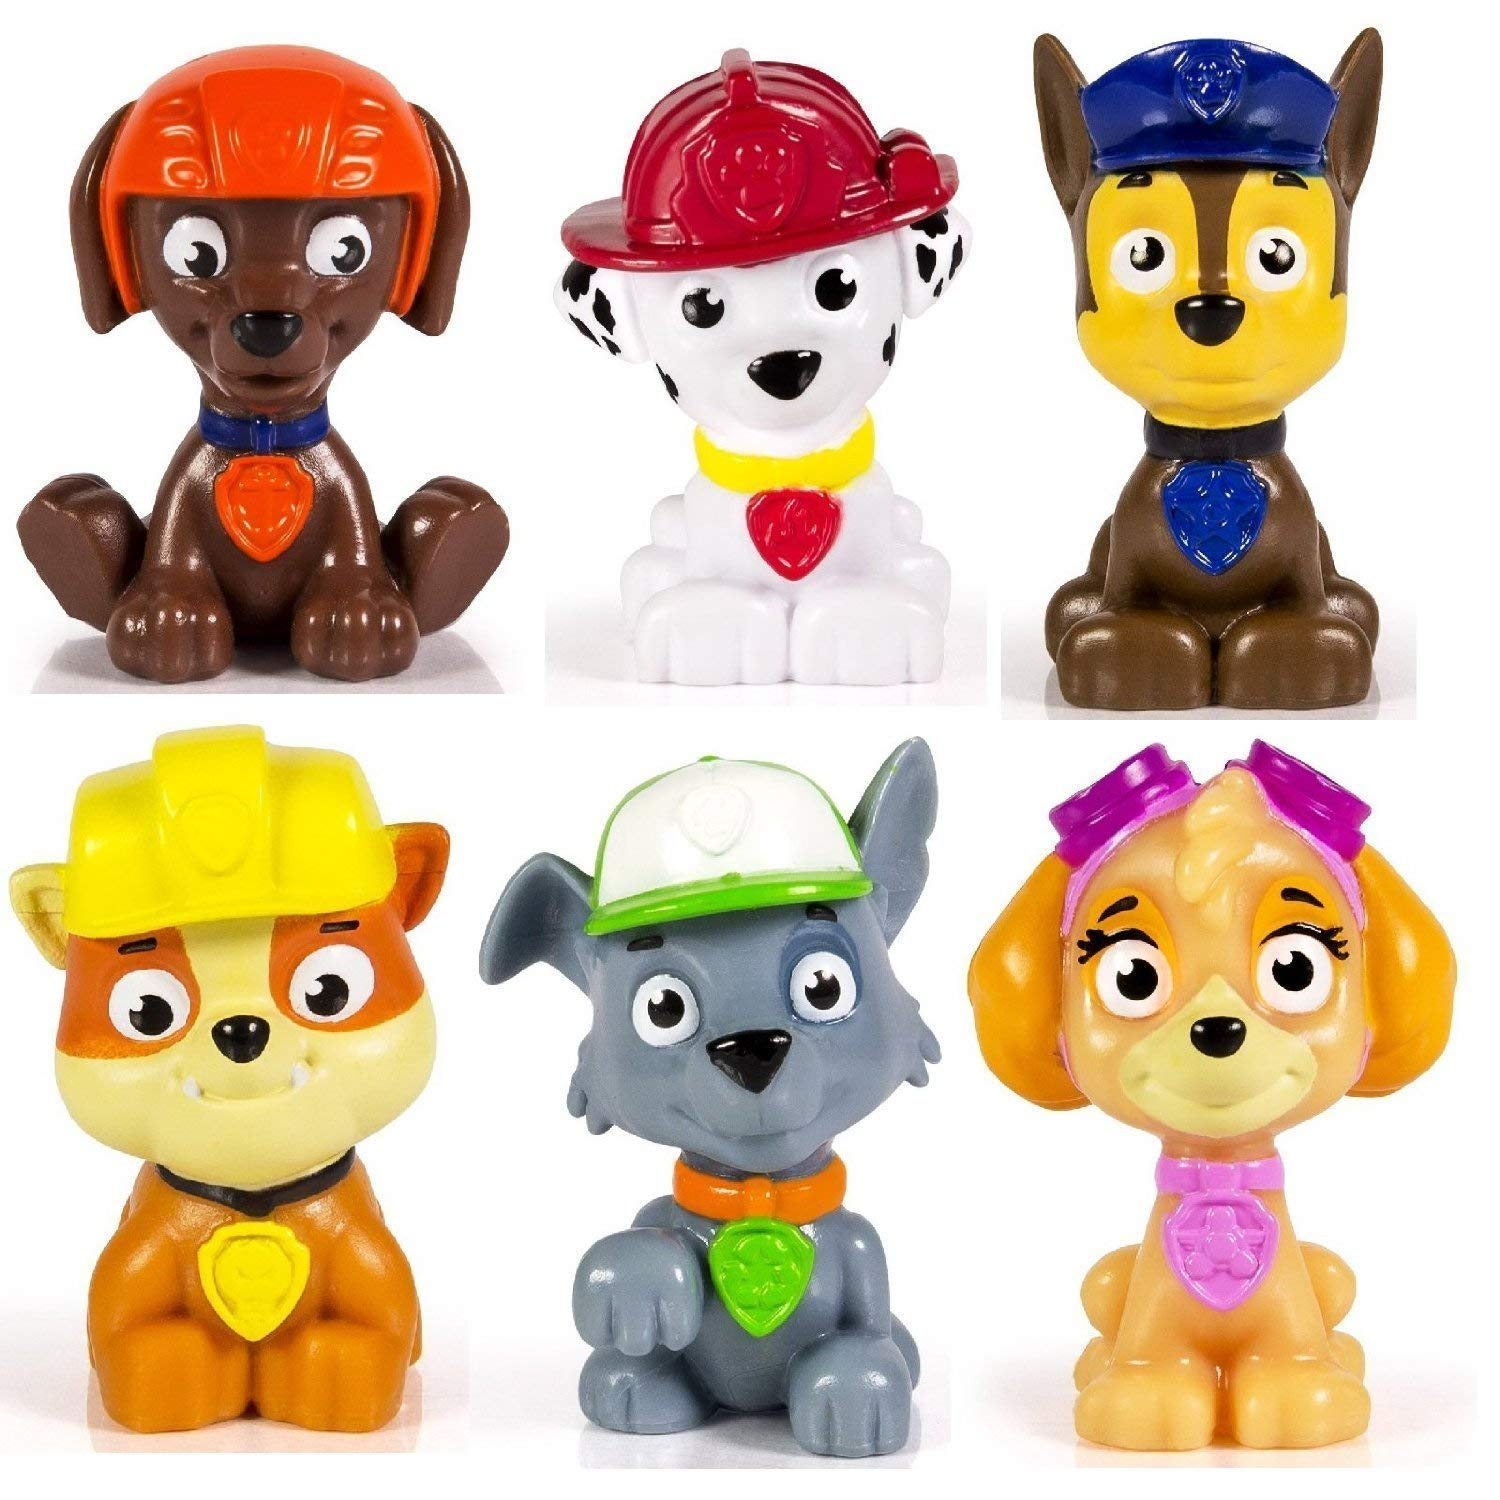 e999bd0d3ab Amazon.com: Spin Master Paw Patrol Figure Set 6 Piece: Toys & Games